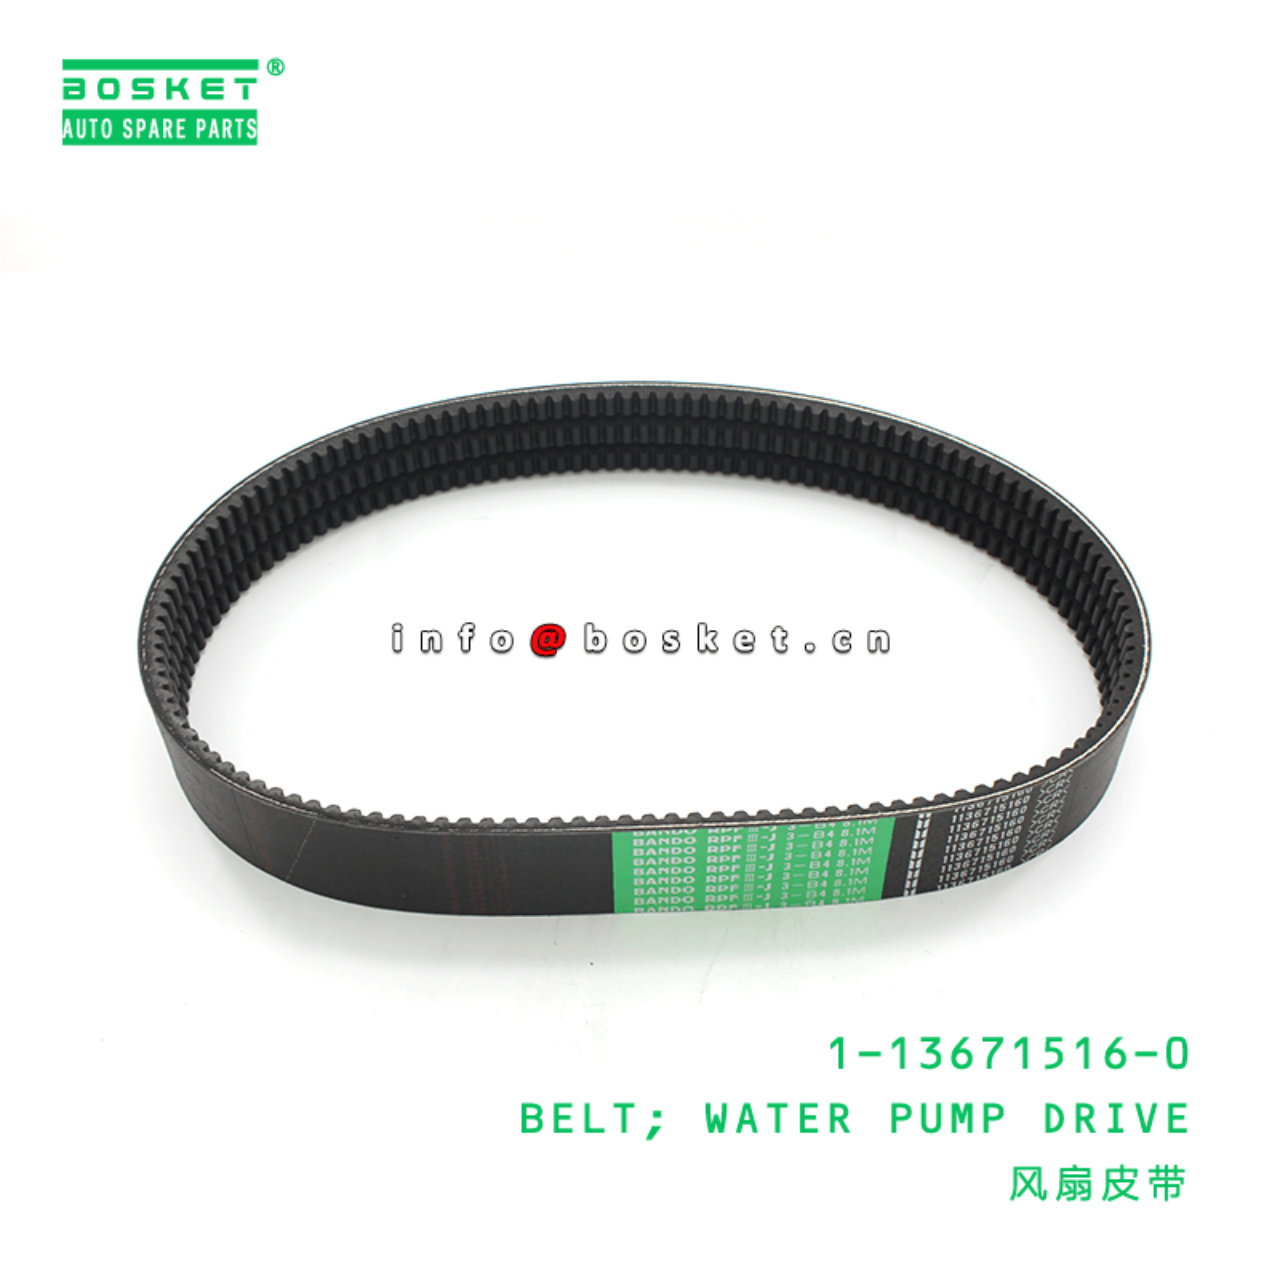 1-13671516-0 Water Pump Drive Belt 1136715160 Suitable for ISUZU XE 6HK1